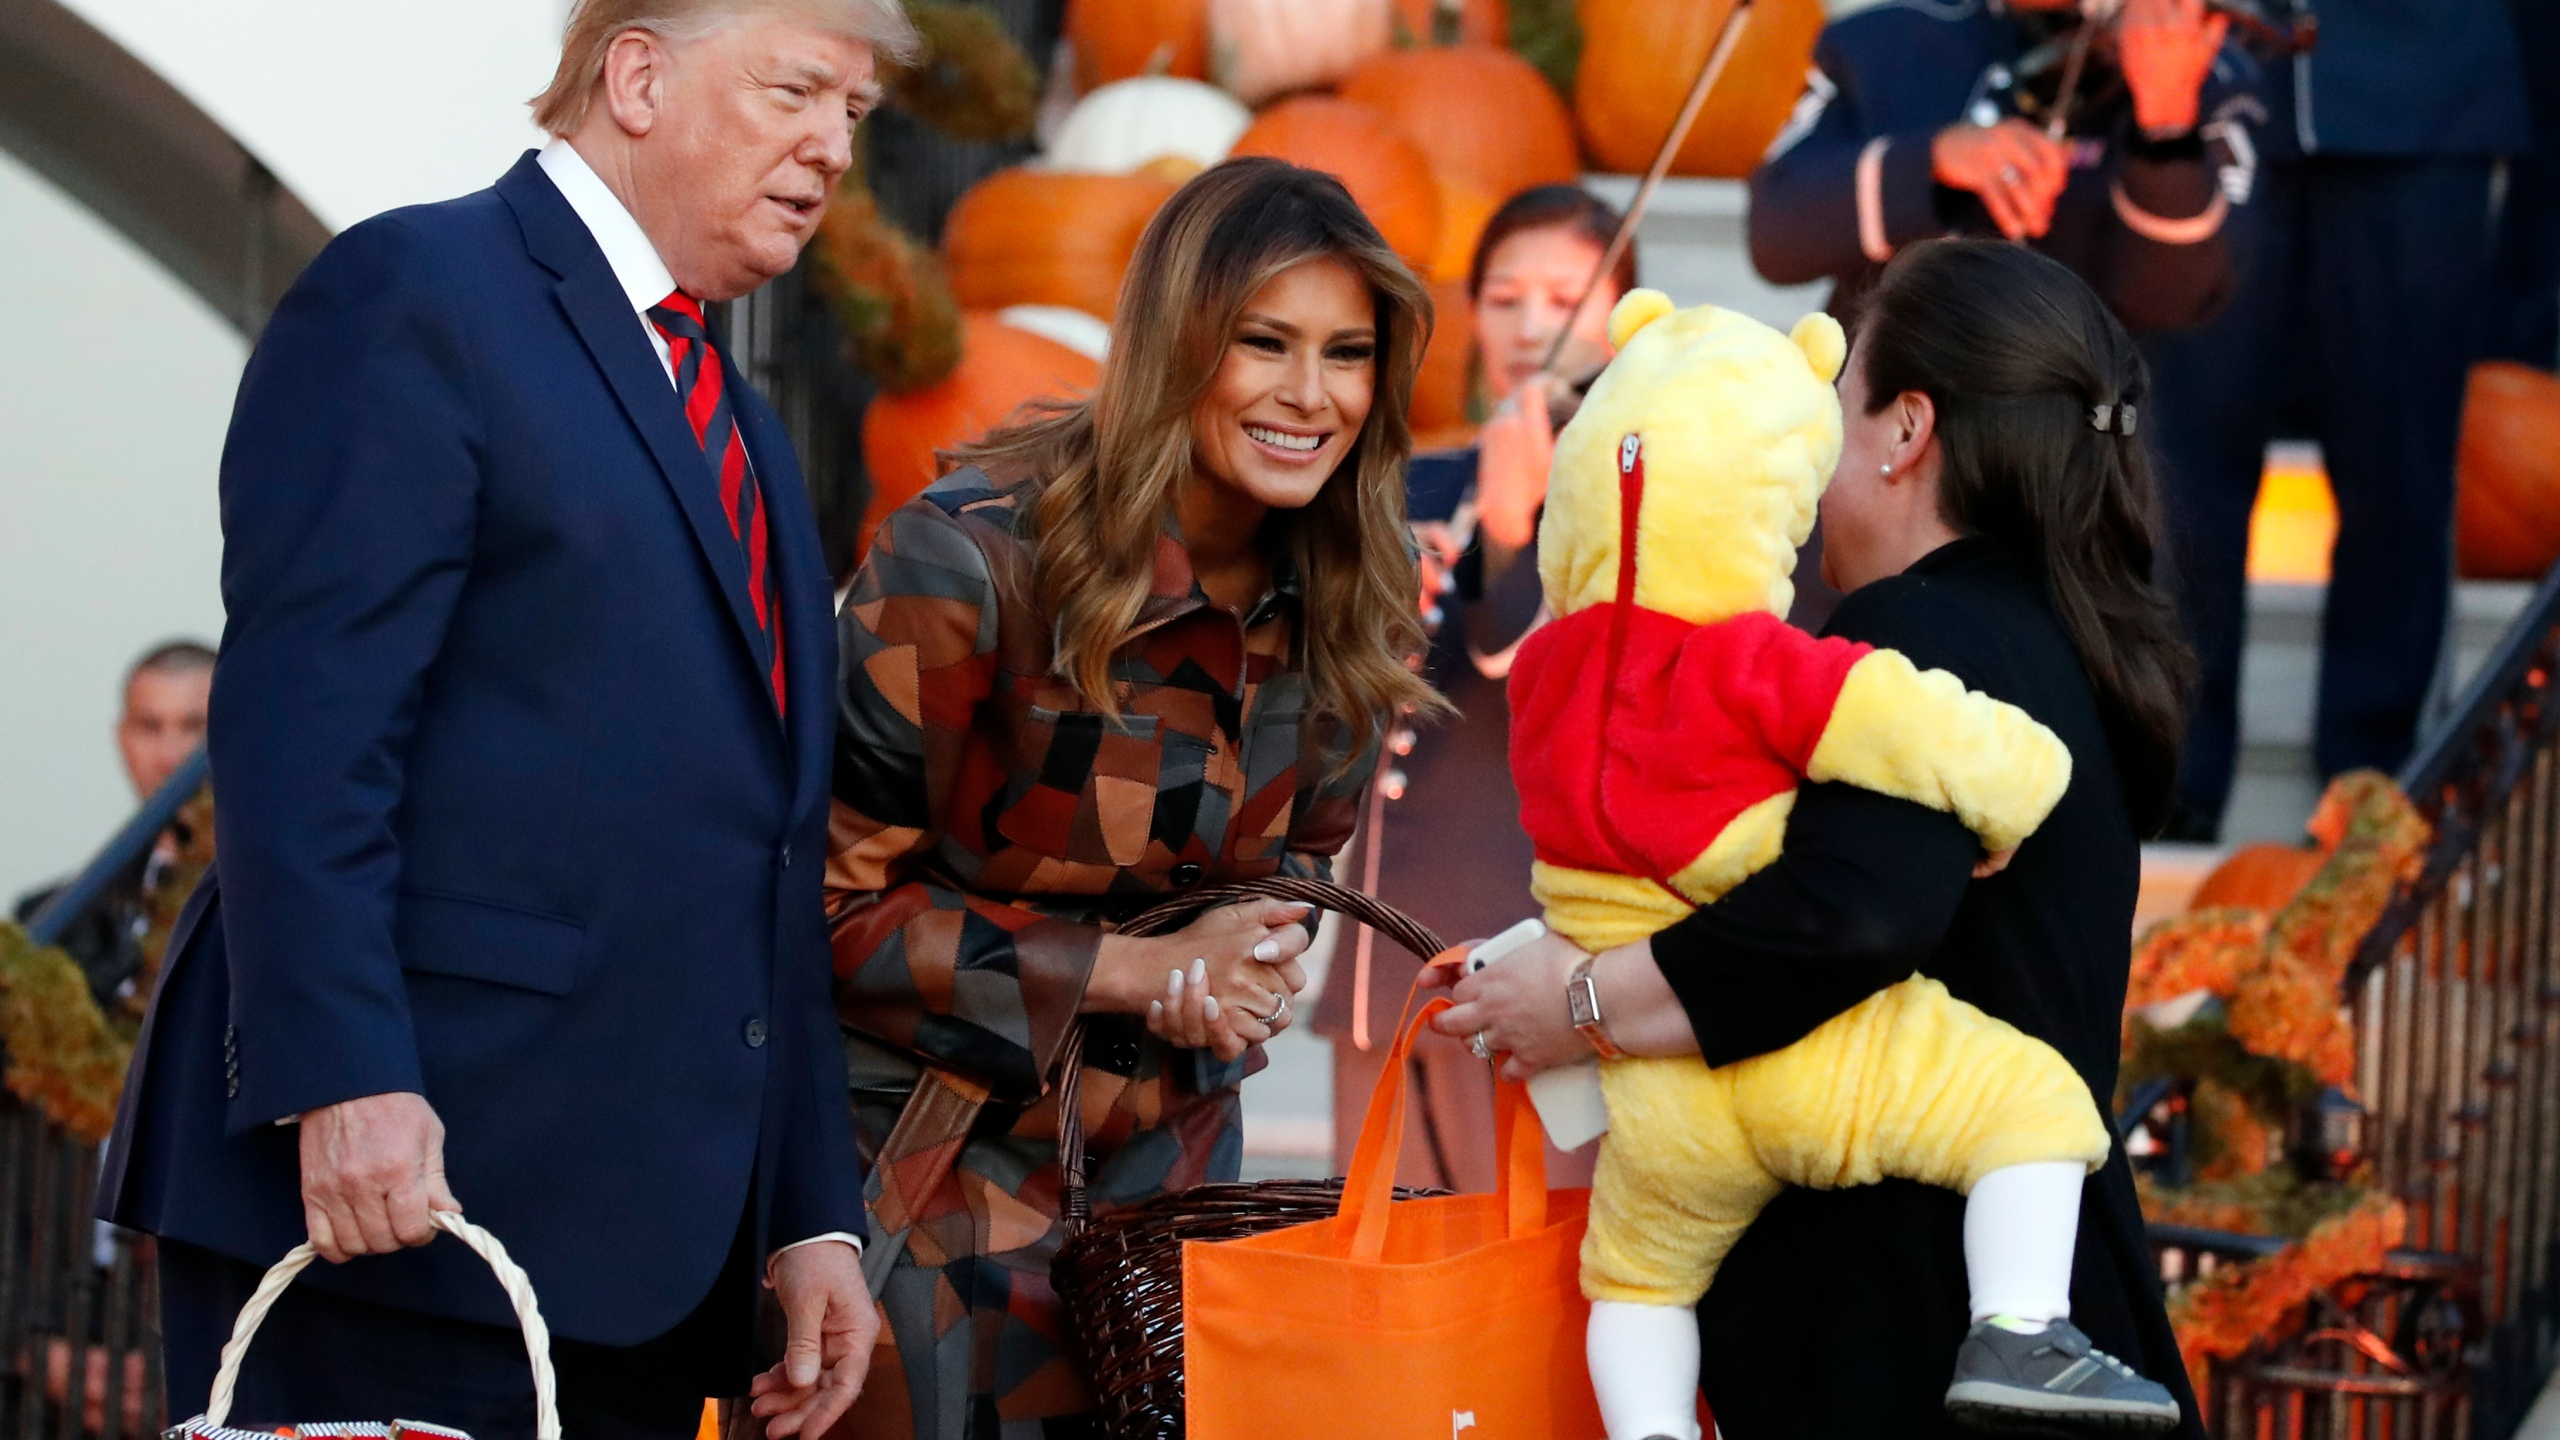 Halloween Candy 2020 News Trumps hand out Halloween candy, greet kids at White House   KRQE